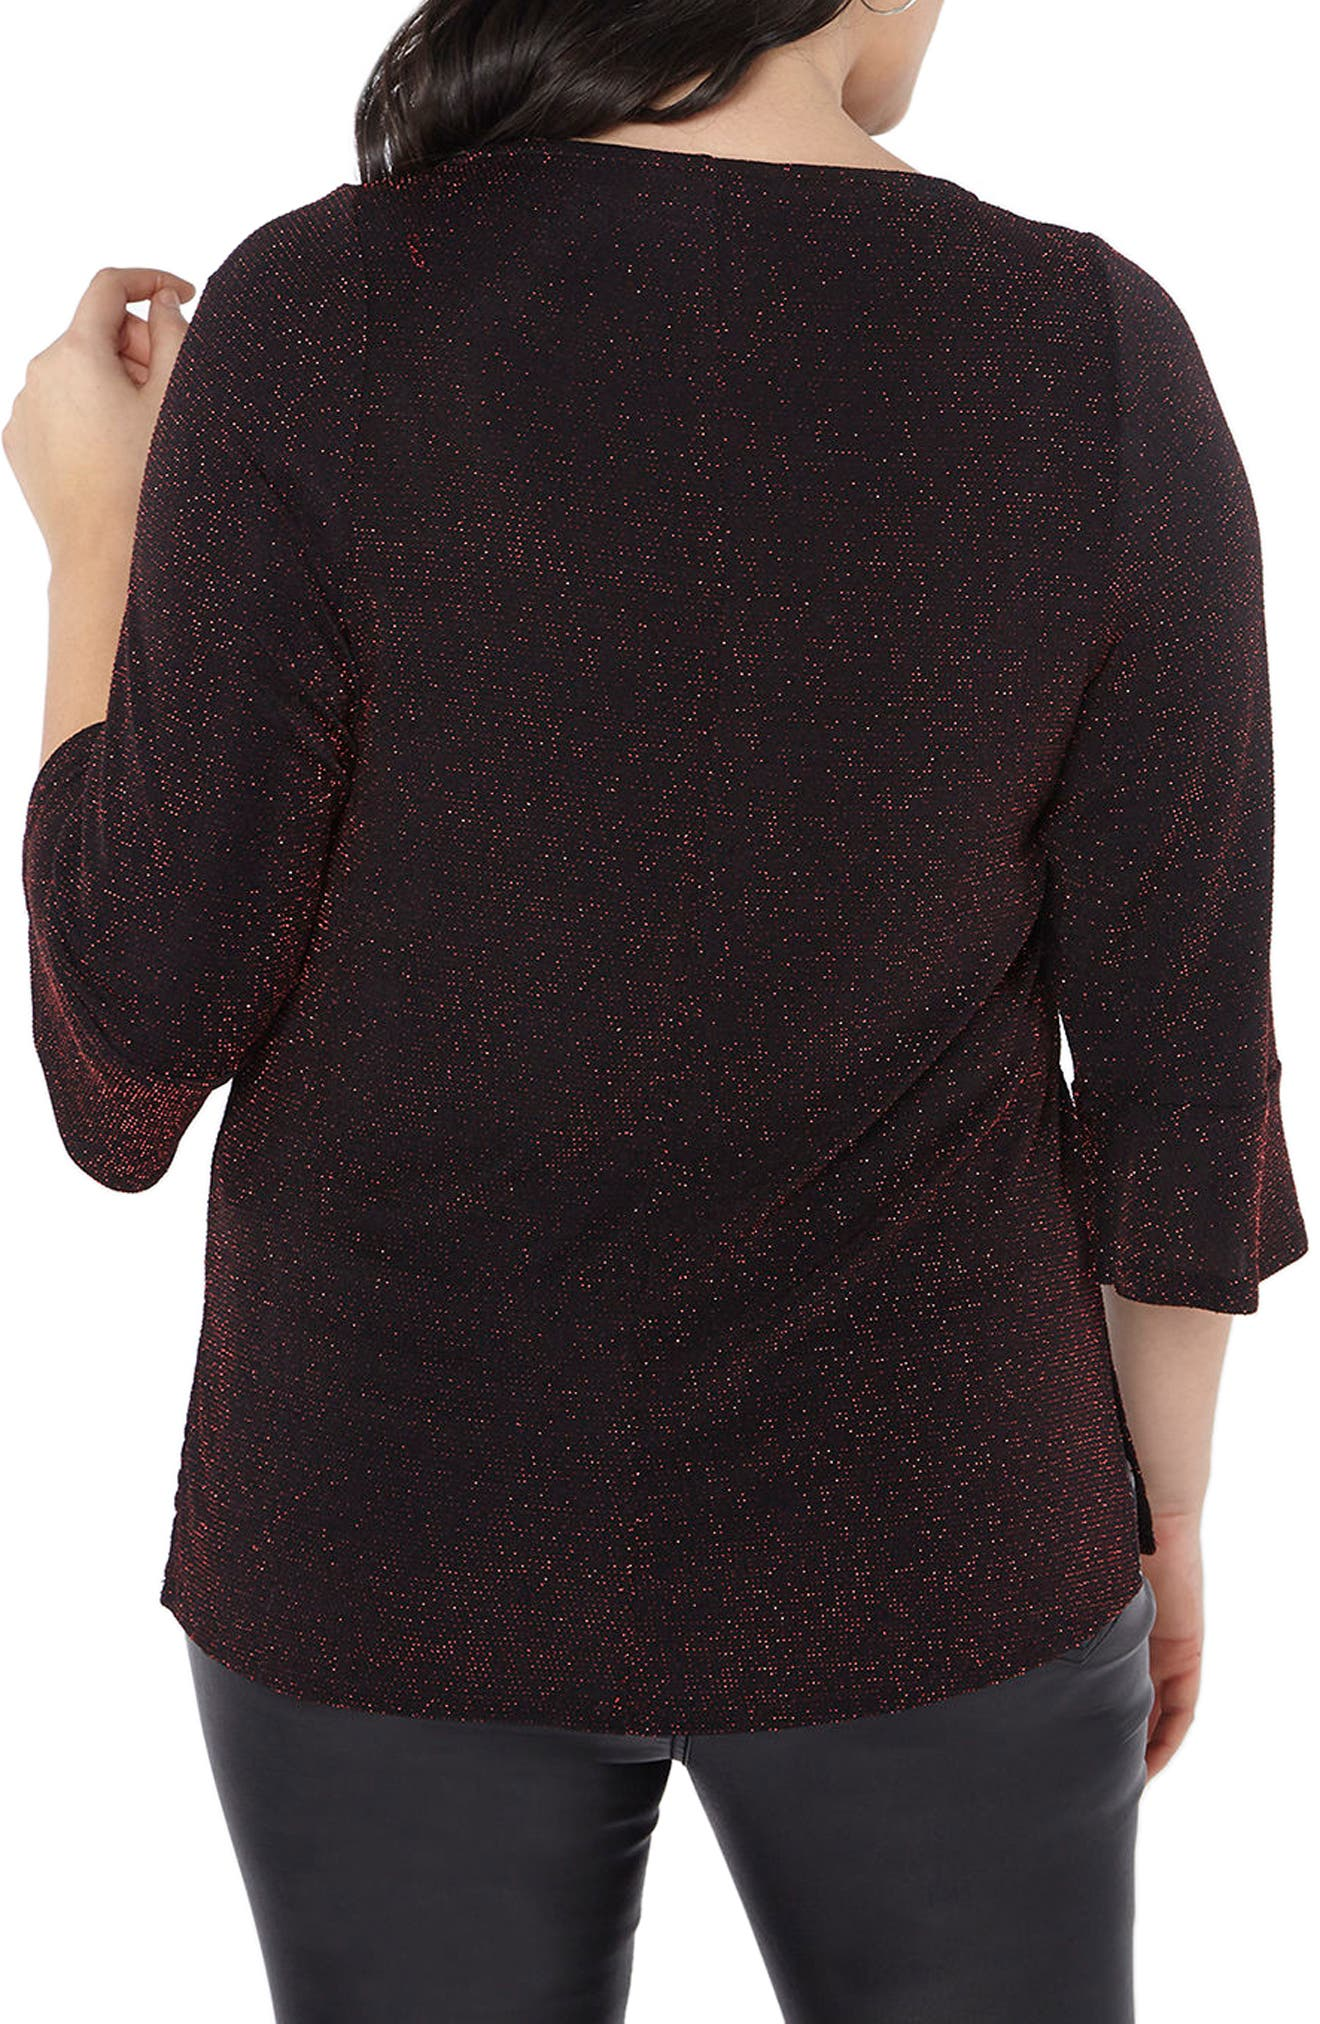 Glitter Bell Sleeve Top,                             Alternate thumbnail 2, color,                             Red